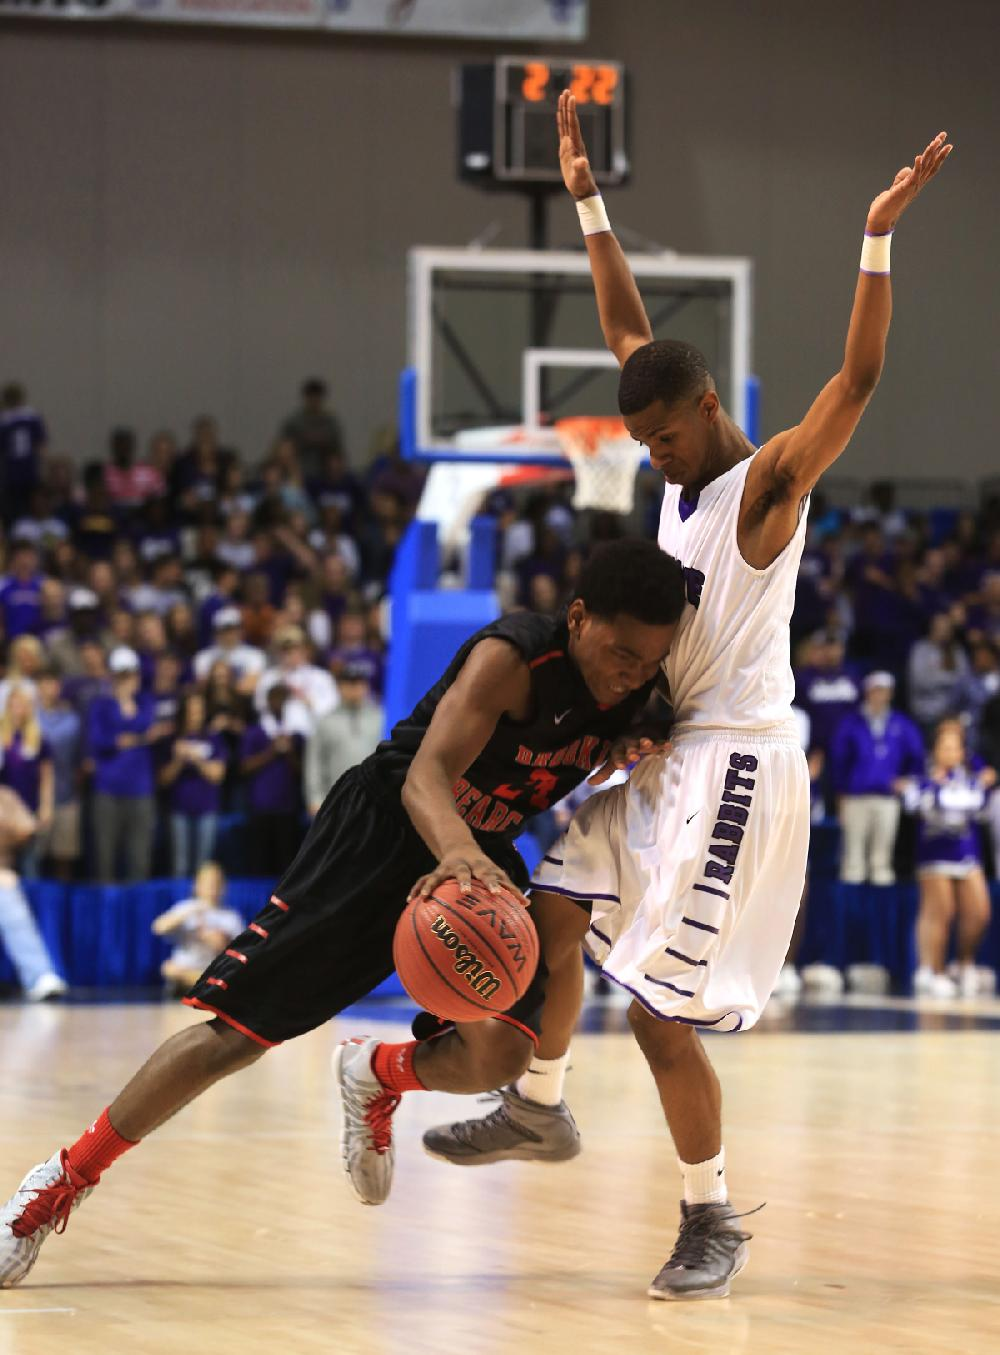 4a boys brookland toughs it out to the end